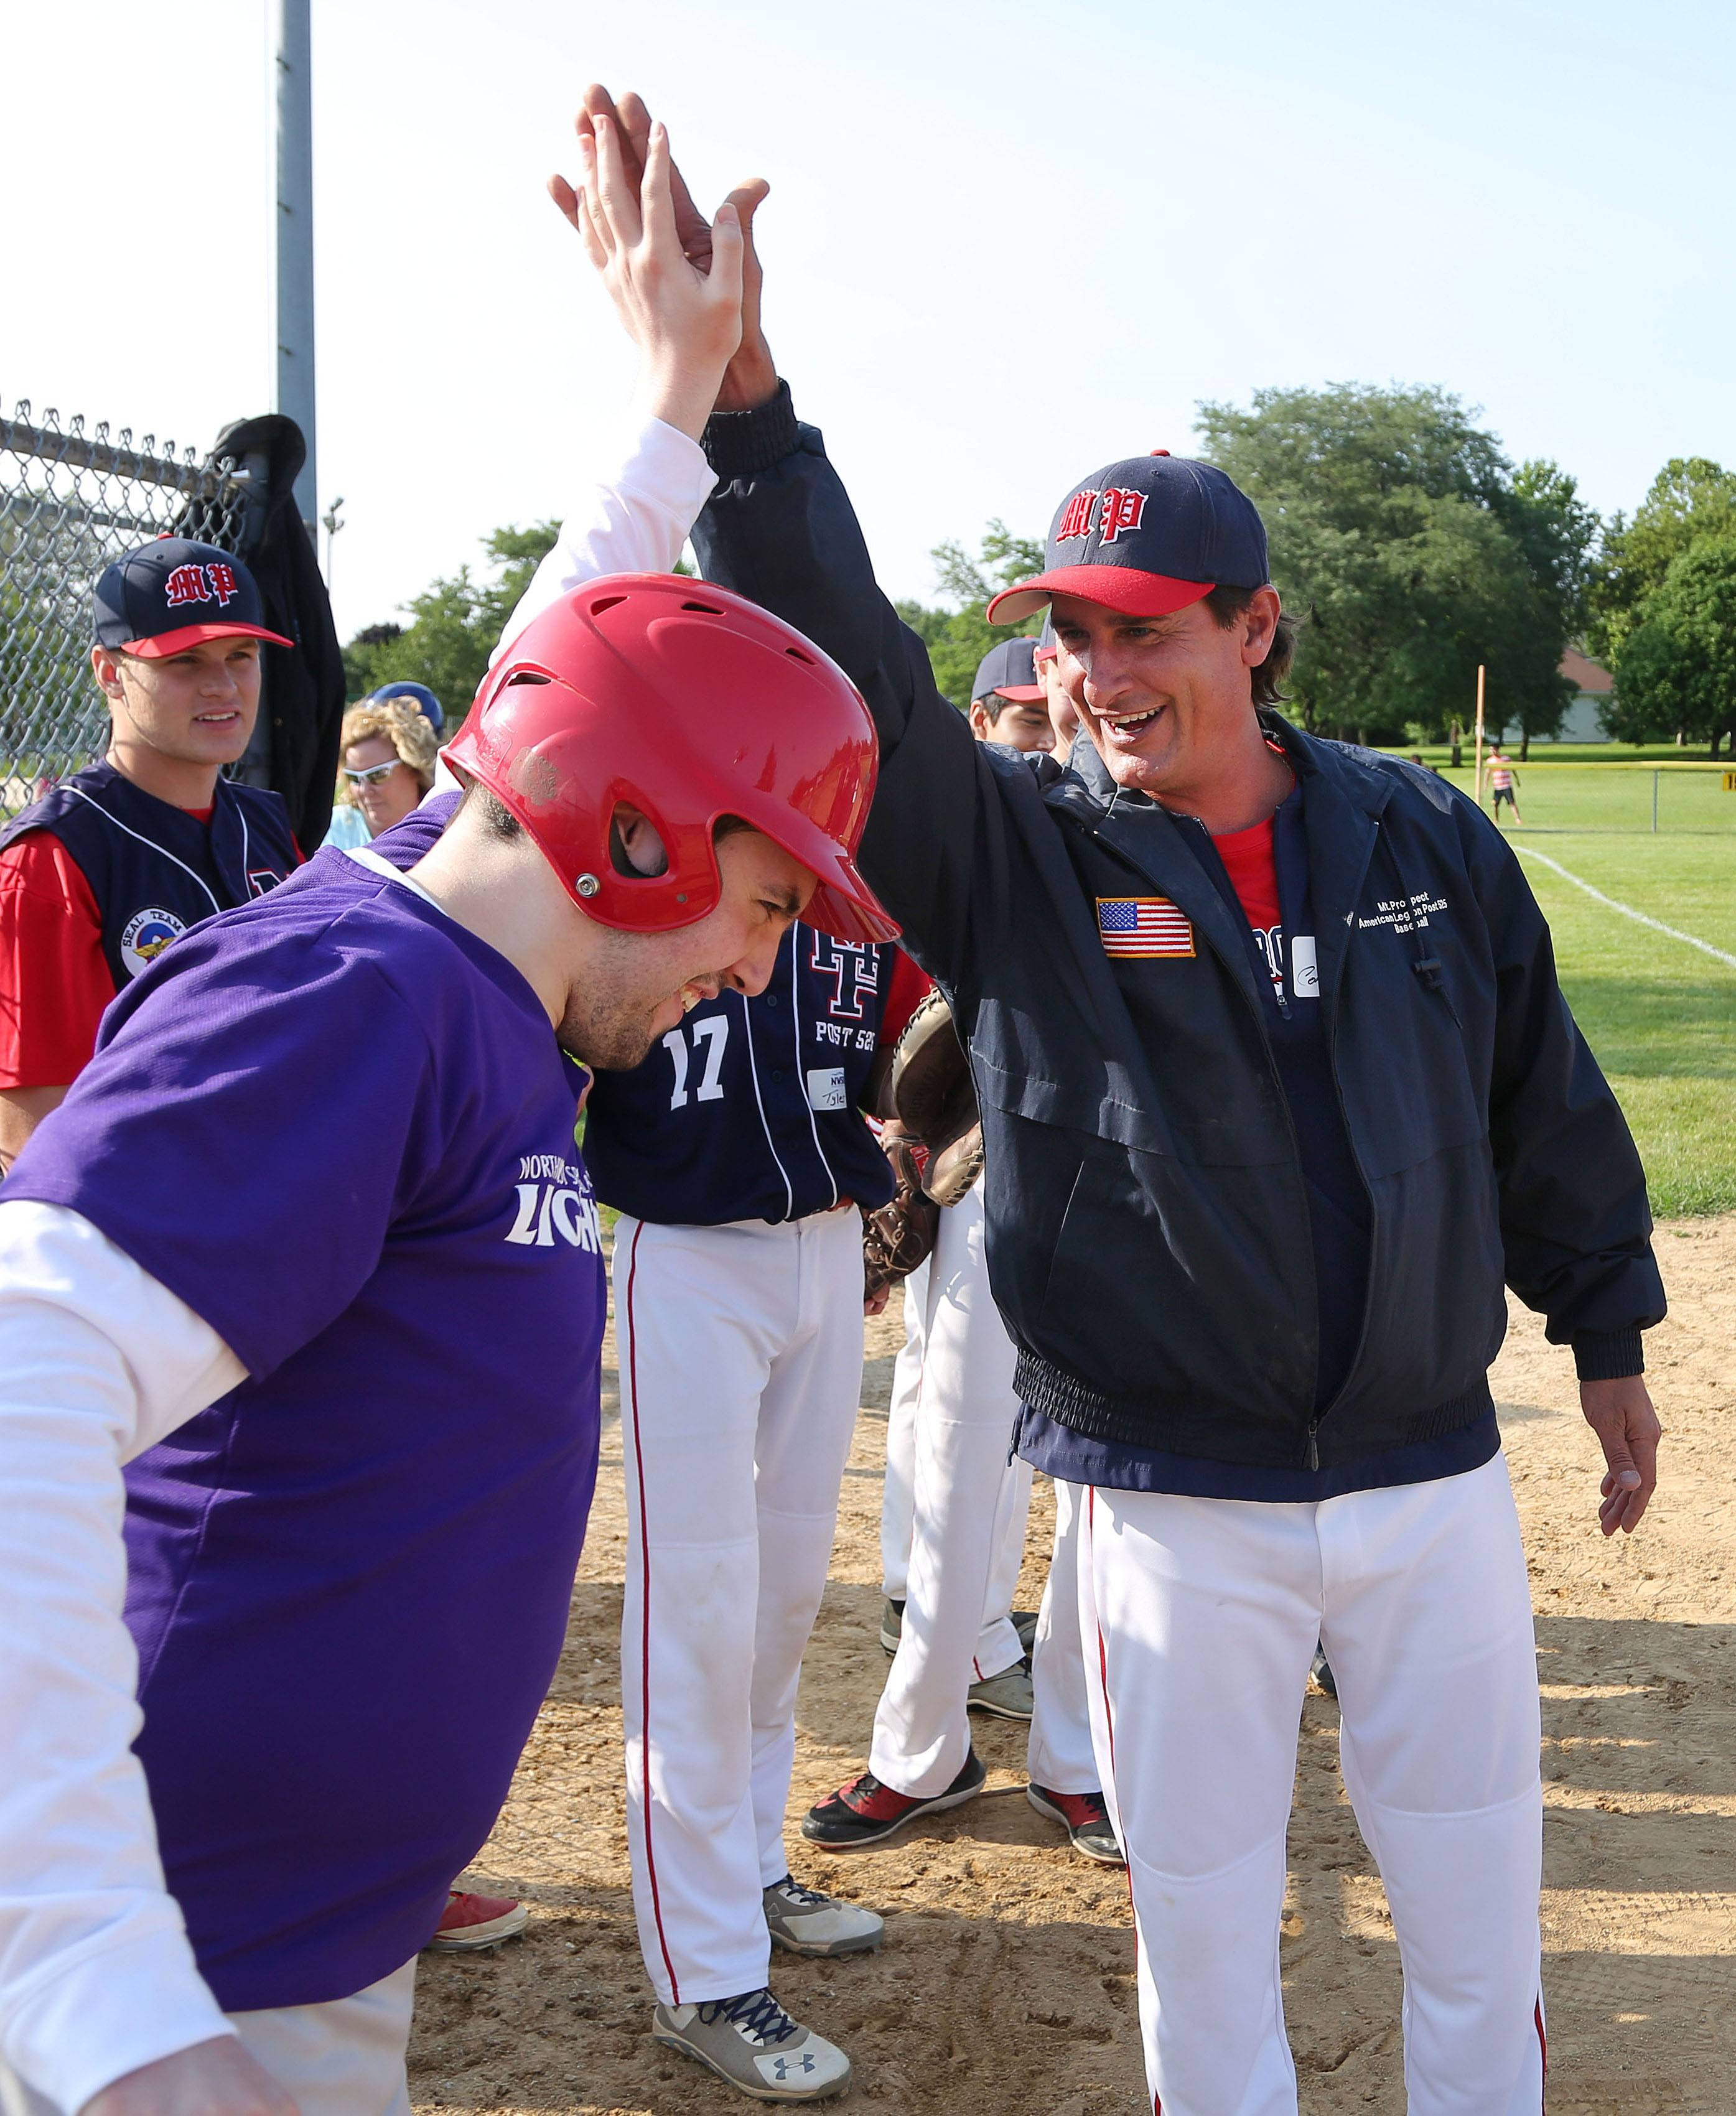 Gus Gilbertson, left, high-fives American Legion assistant coach Jim Haffey as 25 athletes from Northwest Special Recreation Association were paired up with high school players from the American Legion Mount Prospect Bulldogs Post 525 baseball team Tuesday during the 2015 Summer Classic at Friendship Park Conservatory in Des Plaines.